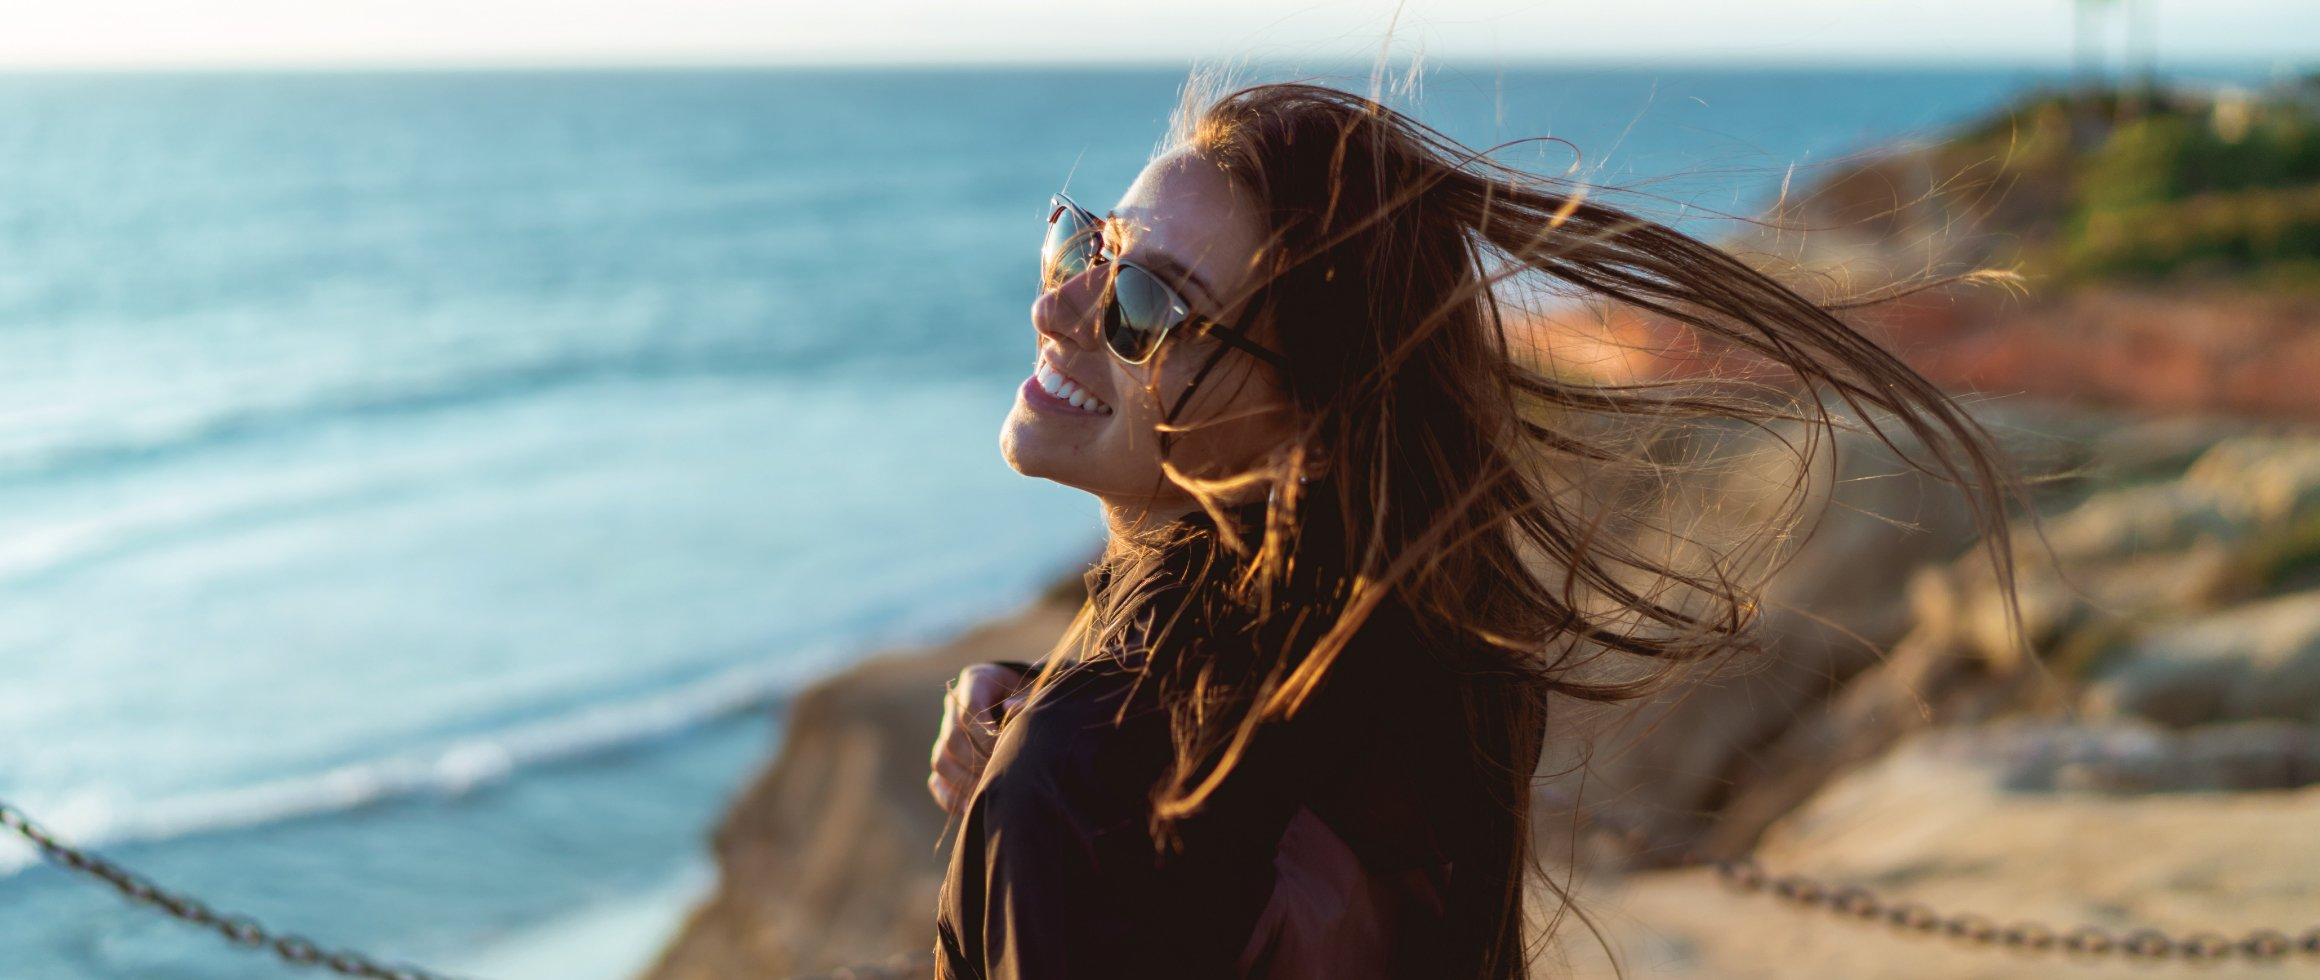 learn to love yourself with these 7 secret tips from confident people